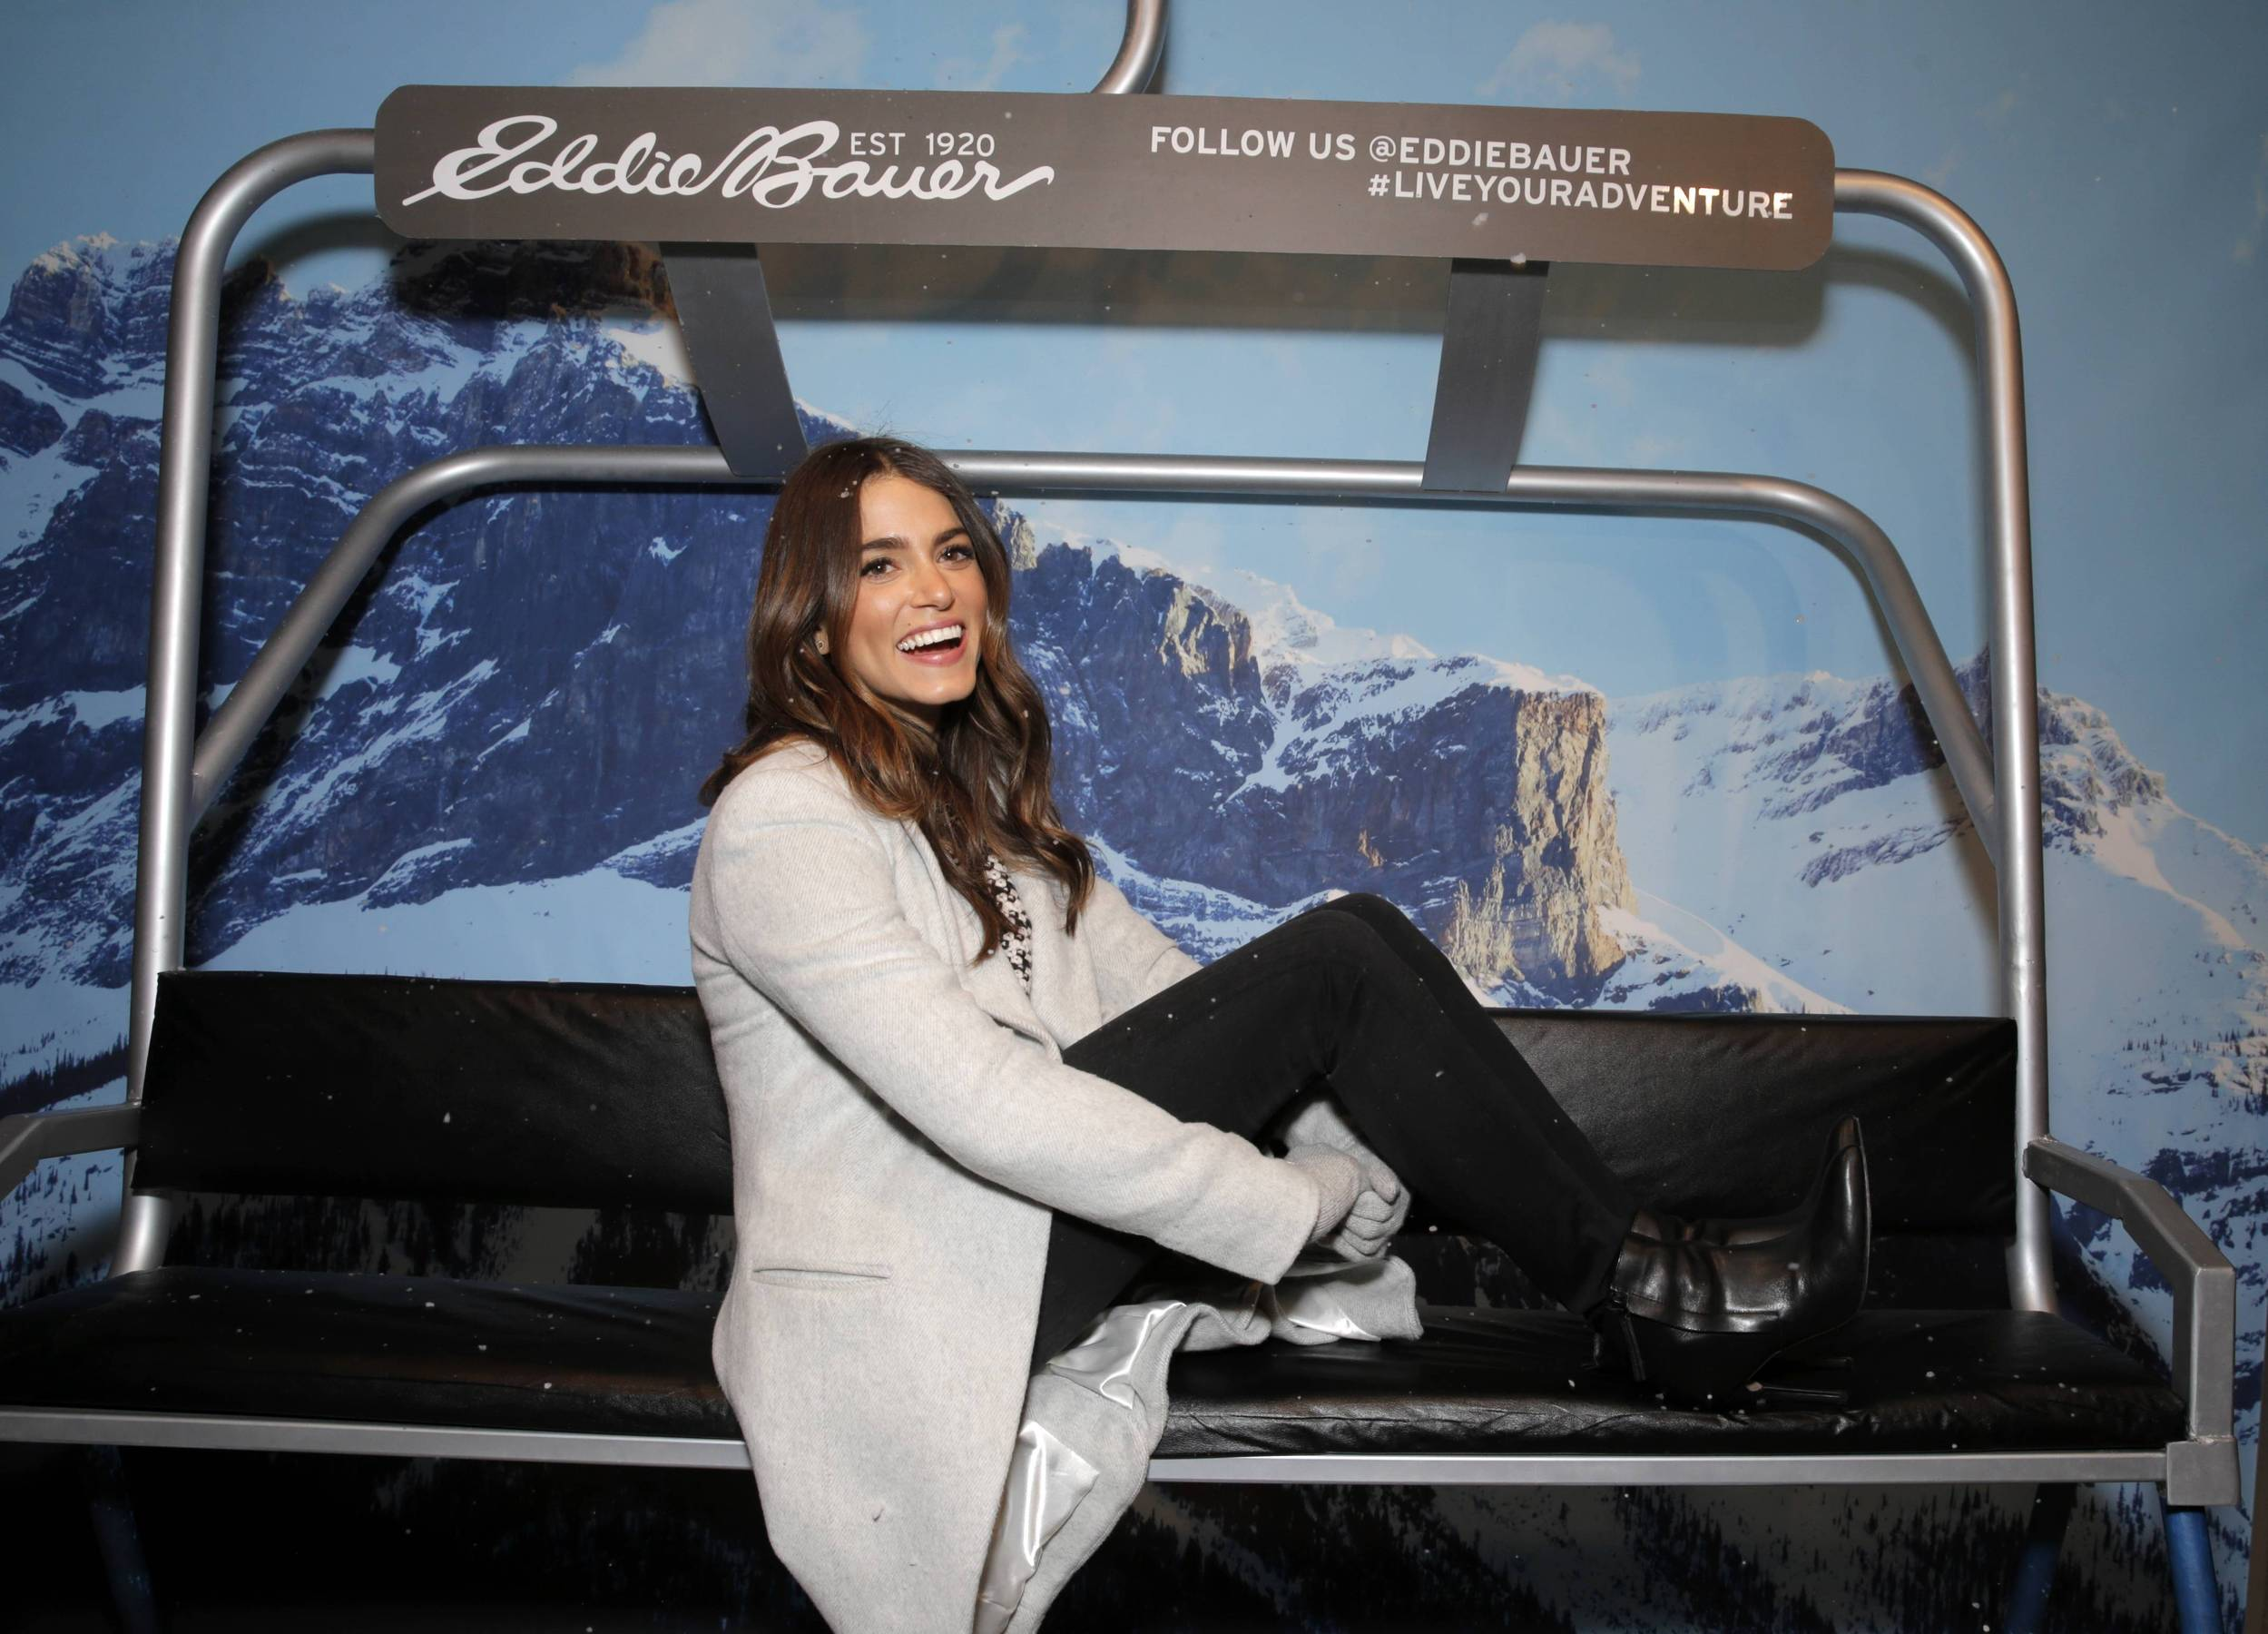 Eddie Bauer Adventure House at Sundance 2015